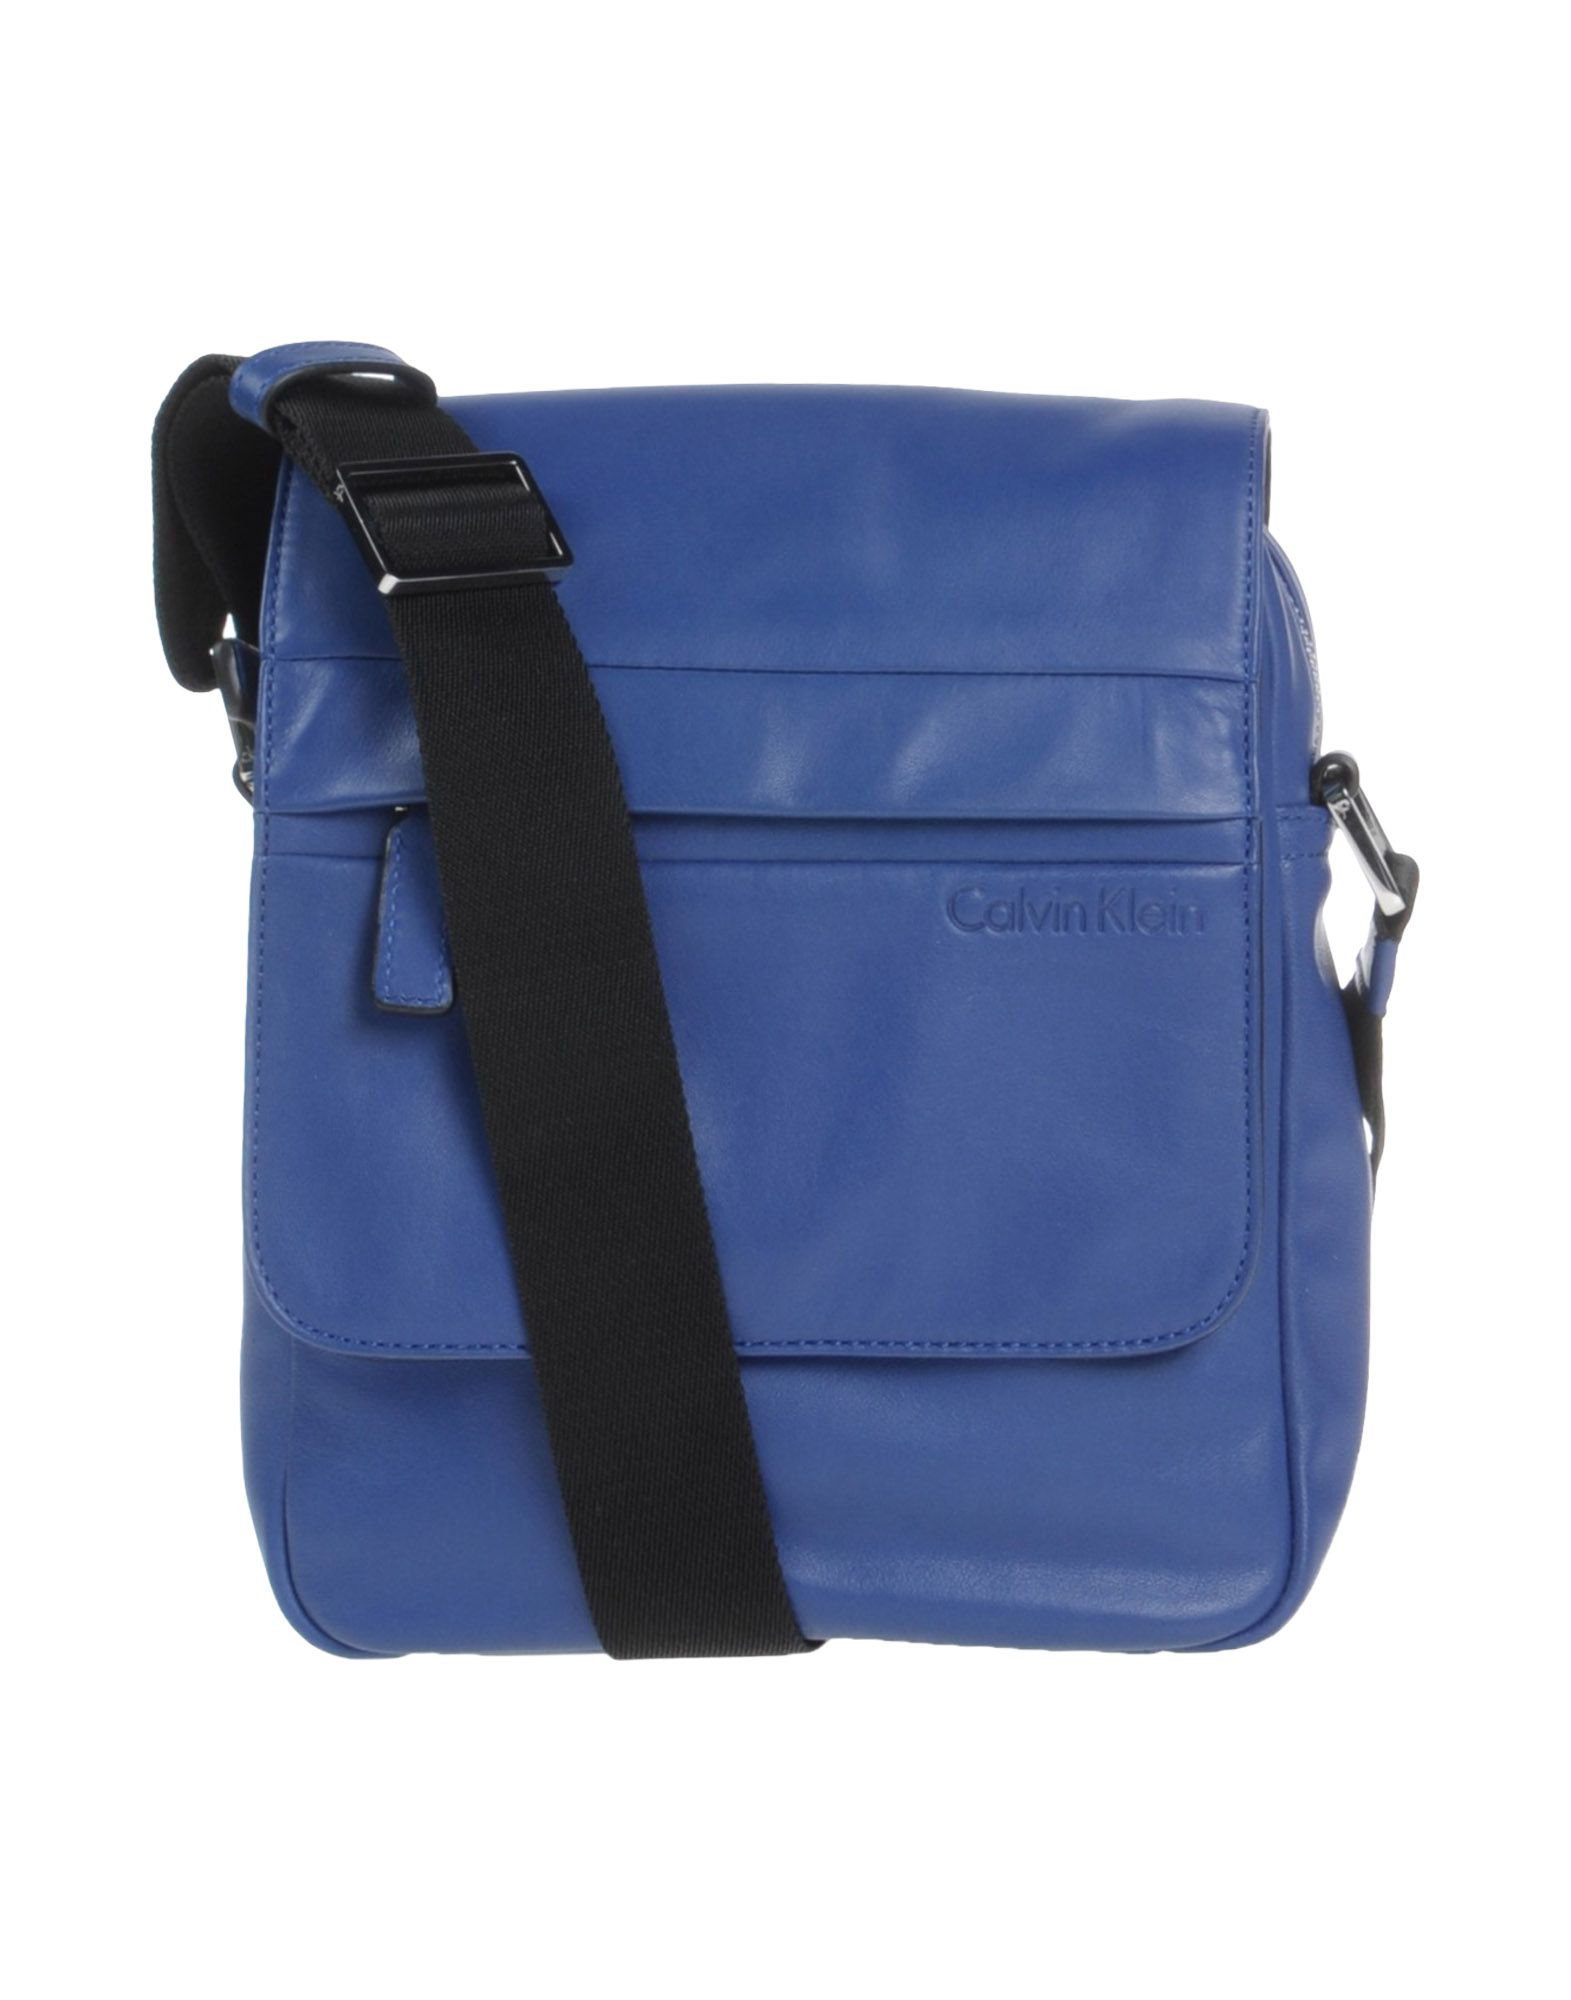 Lyst - Calvin Klein Cross-body Bag in Blue for Men c1fba215e3f3f